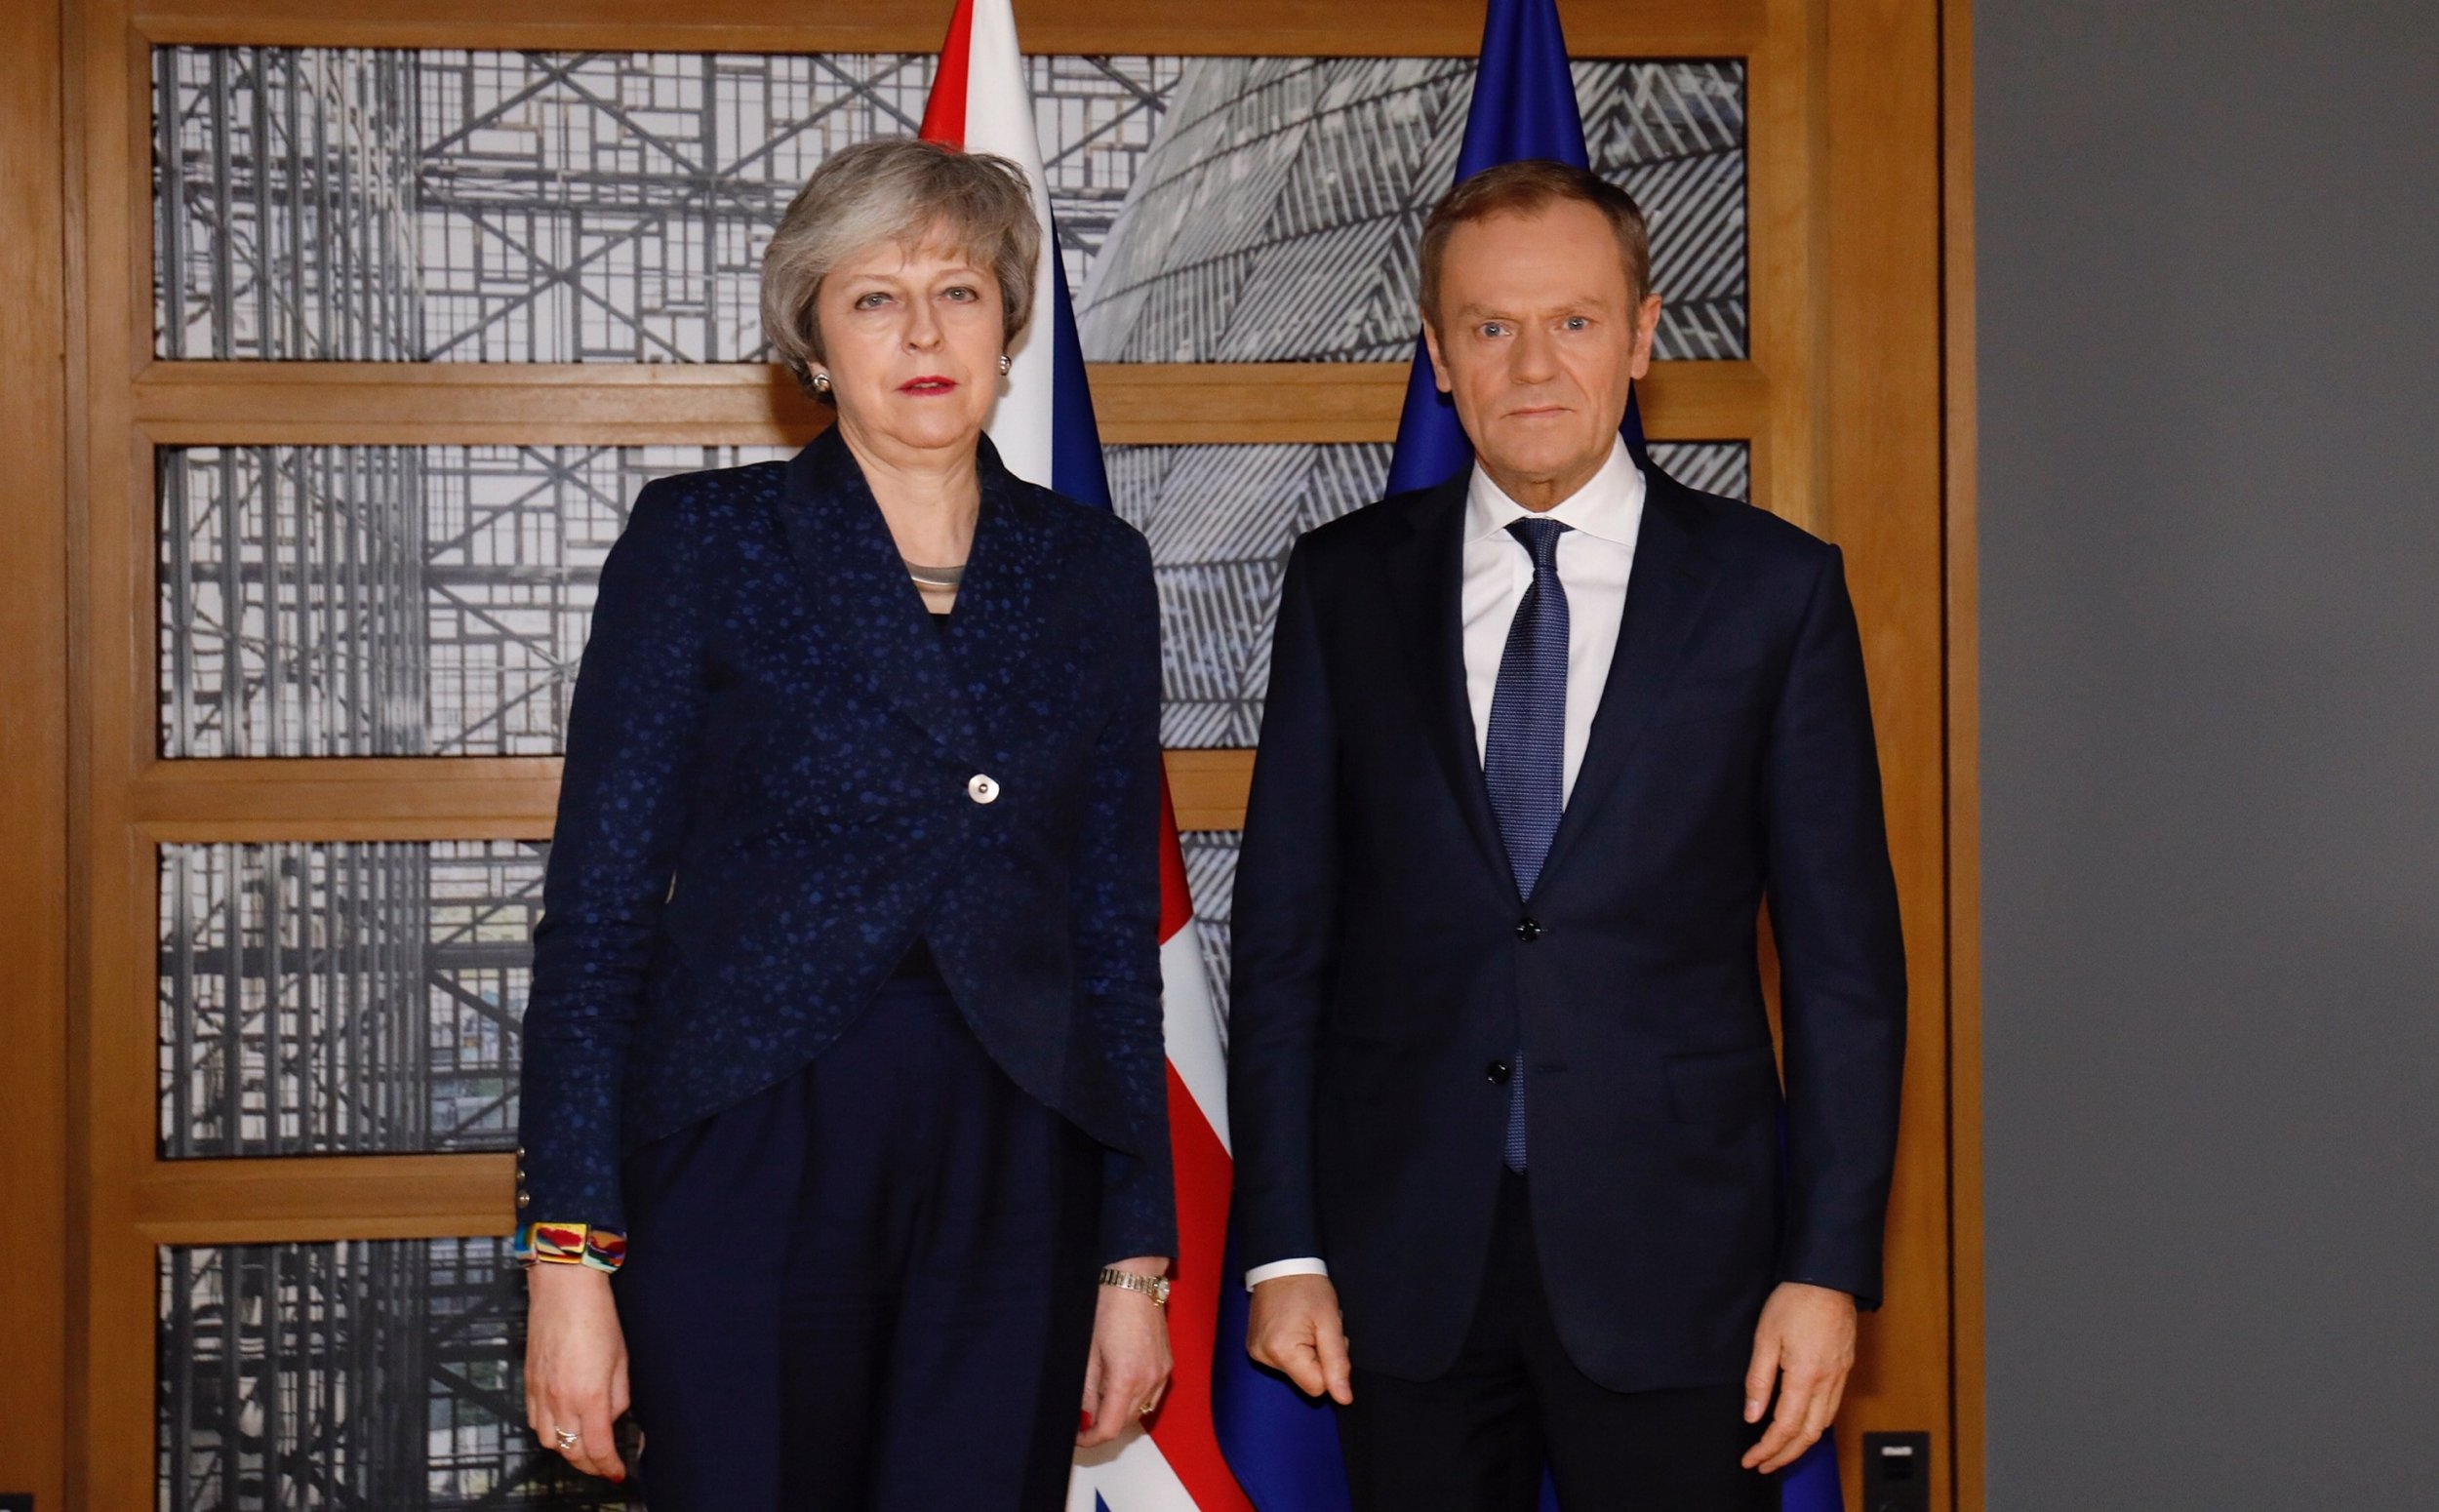 """BRUSSELS, BELGIUM - FEBRUARY 07: (----EDITORIAL USE ONLY MANDATORY CREDIT - """"EU COUNCIL / HANDOUT"""" - NO MARKETING NO ADVERTISING CAMPAIGNS - DISTRIBUTED AS A SERVICE TO CLIENTS----) British Prime Minister Theresa May (L) and President of the European Council Donald Tusk (R) pose for a photo ahead of their meeting in Brussels, Belgium on February 07, 2019. (Photo by EU Council / Handout/Anadolu Agency/Getty Images)"""